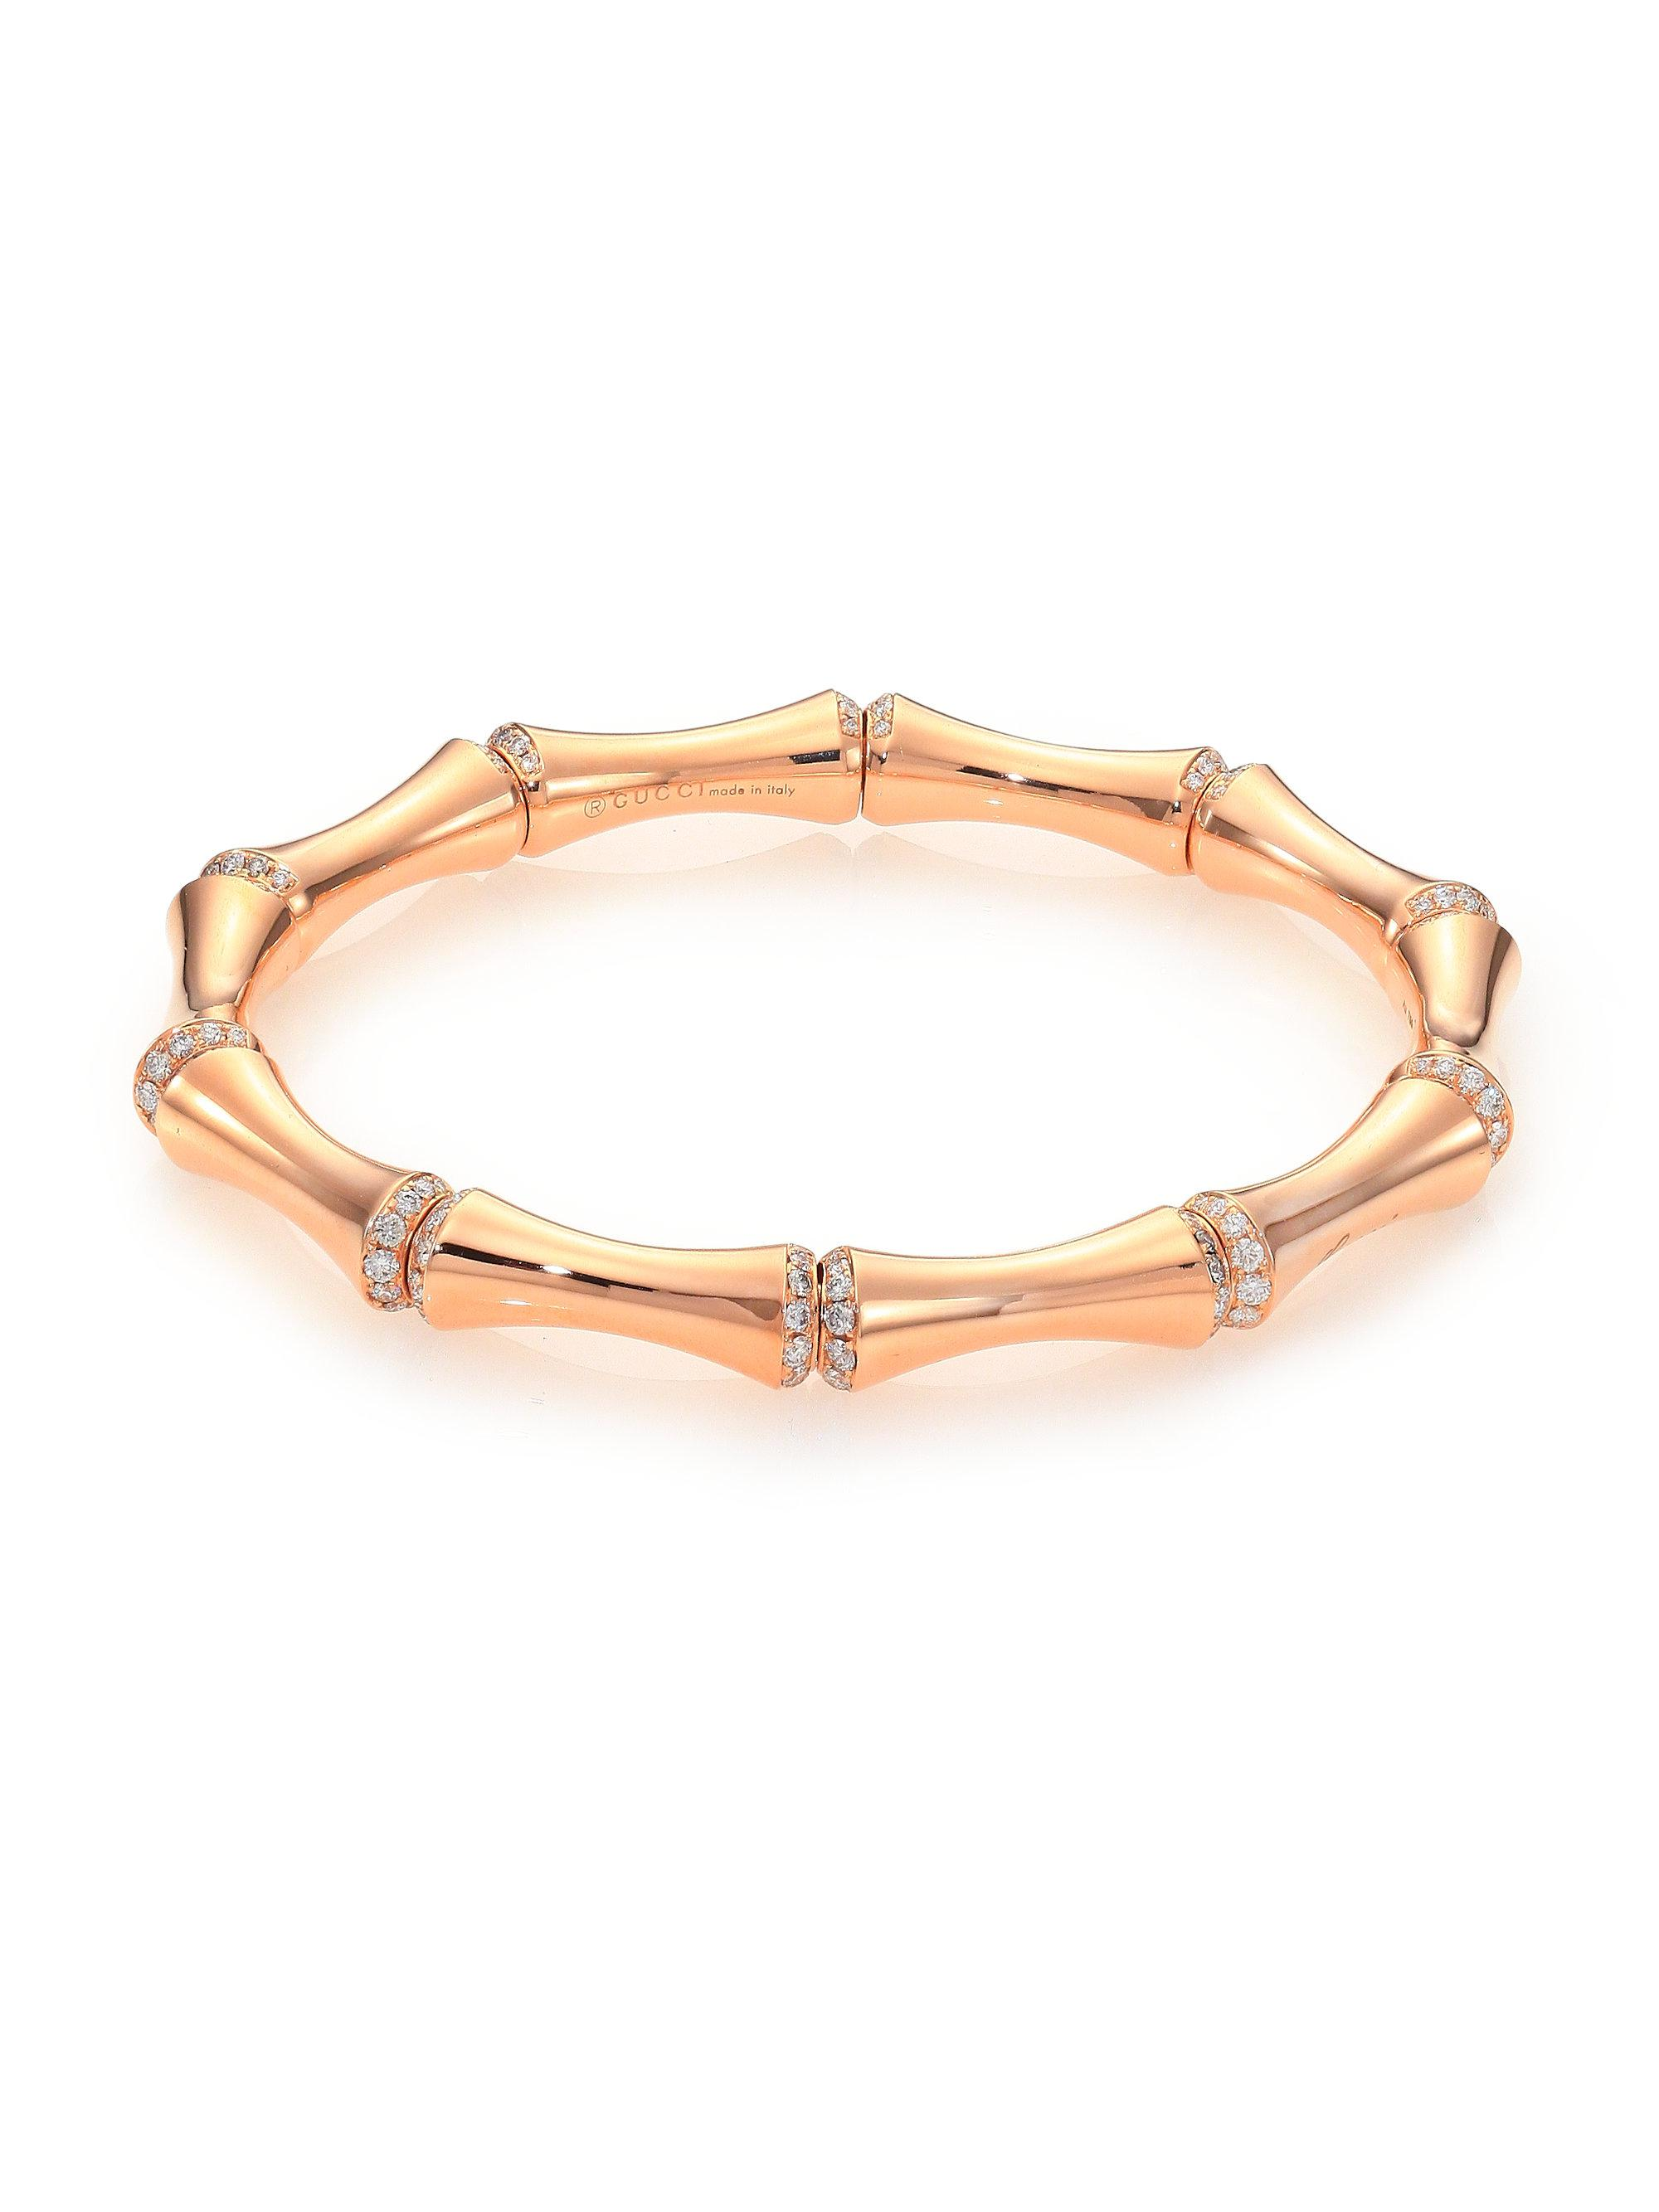 edit rose gold bracelet bangle bangles diamond bracelets karat